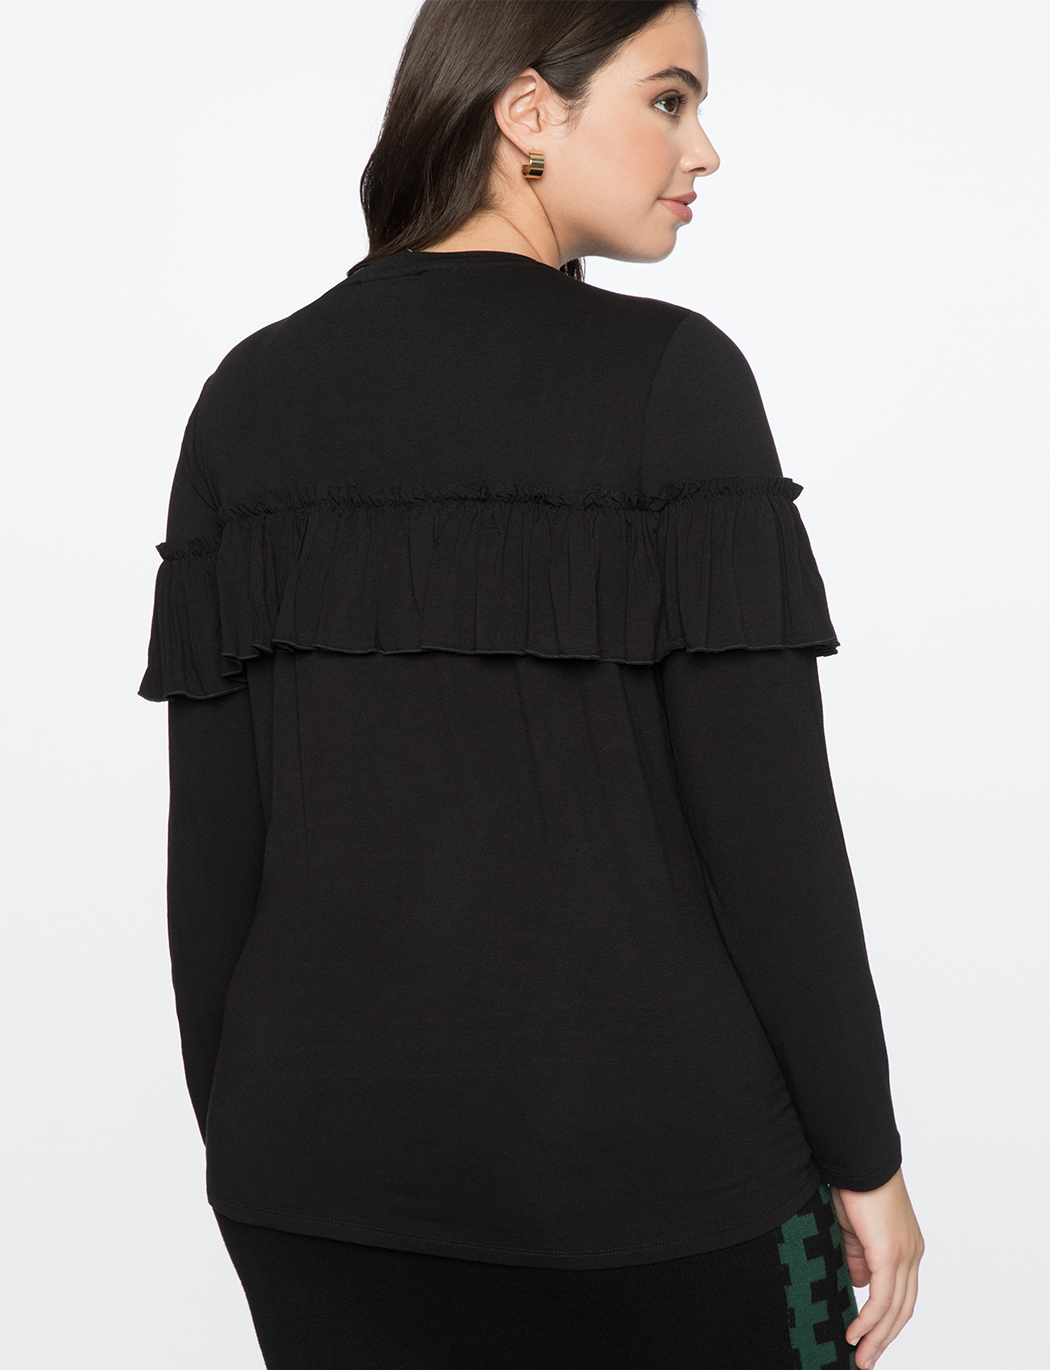 Ruffled Yoke Long Sleeve Tee